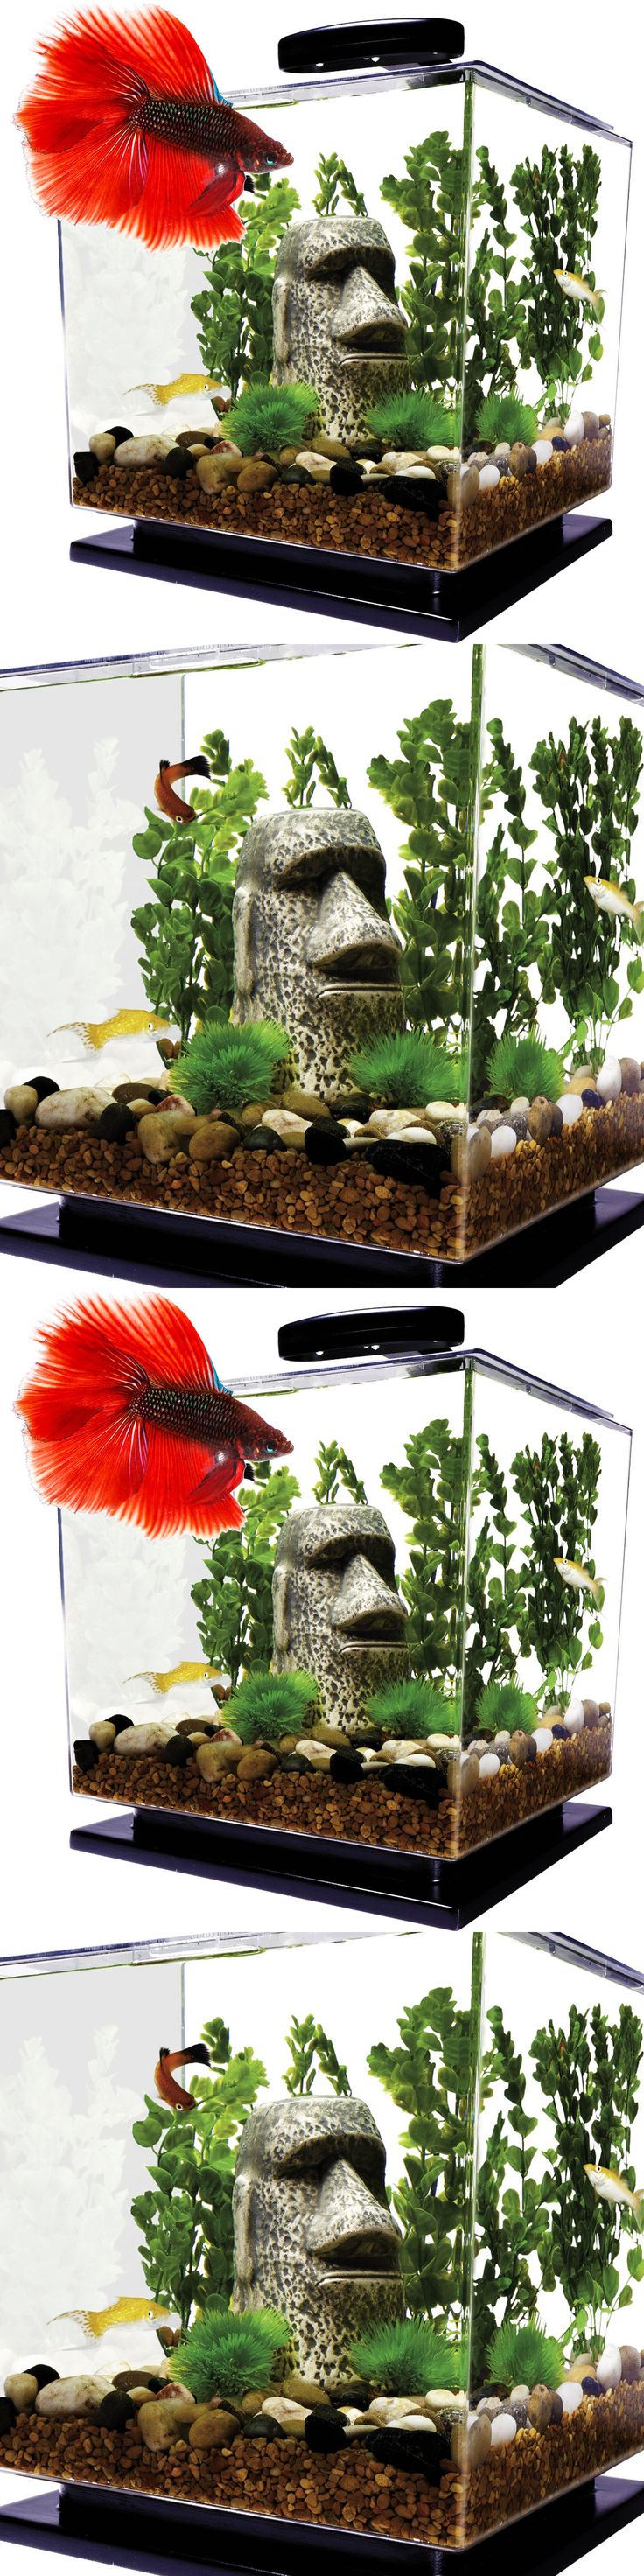 Aquarium fish tank complete system - Aquariums And Tanks 20755 Cube Aquarium Betta Fish Tank System Acrylic 3 Gallon Water Filter Led Light Set Buy It Now Only 46 91 On Ebay